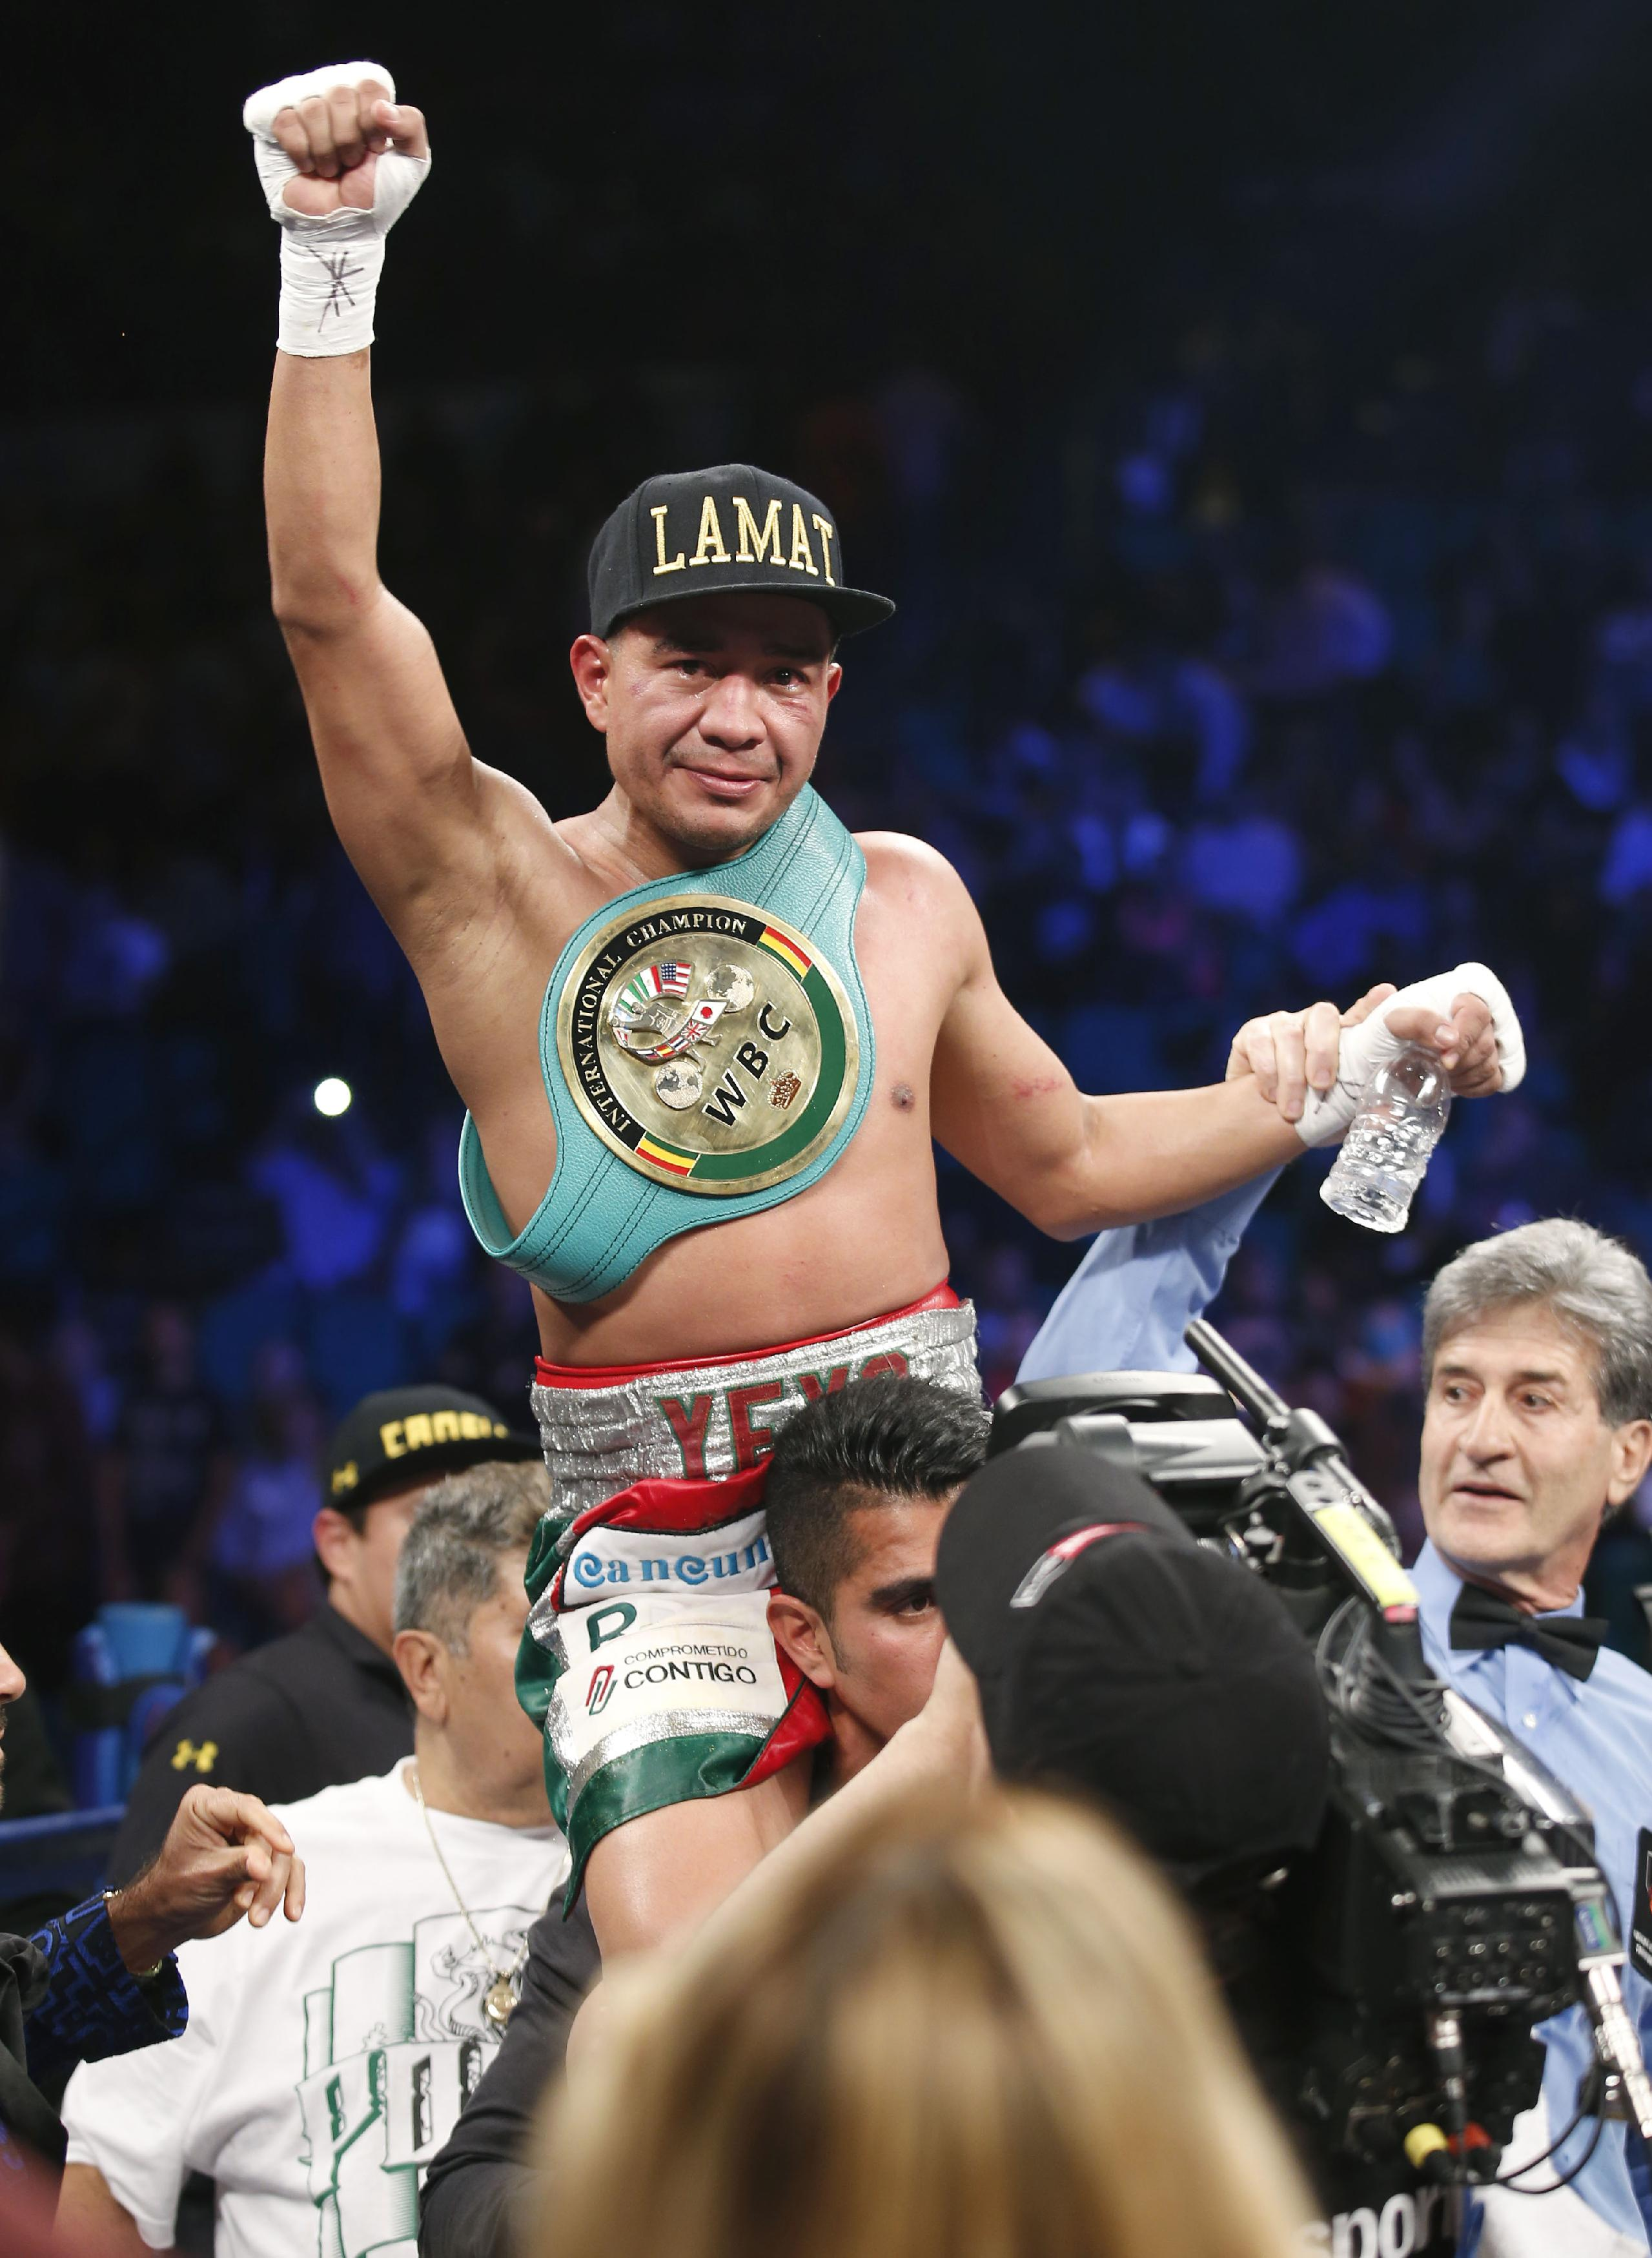 Sergio Thompson of Chetumal Mexico celebrates his unanimous decision victory over Ricardo Alvarez of Guadalajara Mexico just after their WBC lightweight boxing match, Saturday, March 8, 2014, at The MGM Grand Garden Arena in Las Vegas